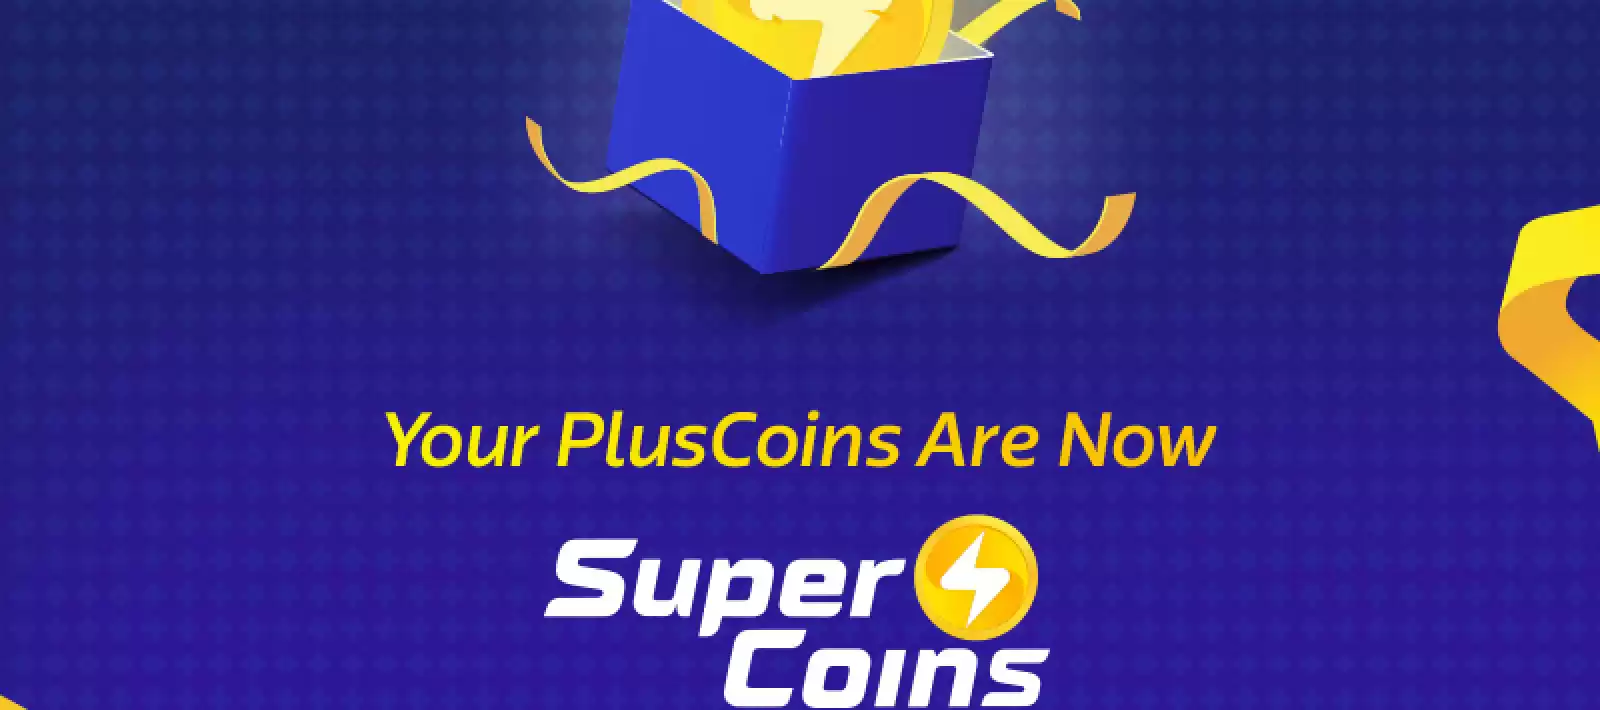 Flipkart SuperCoin Daily Loot: Get 10 FREE Supercoins Everyday